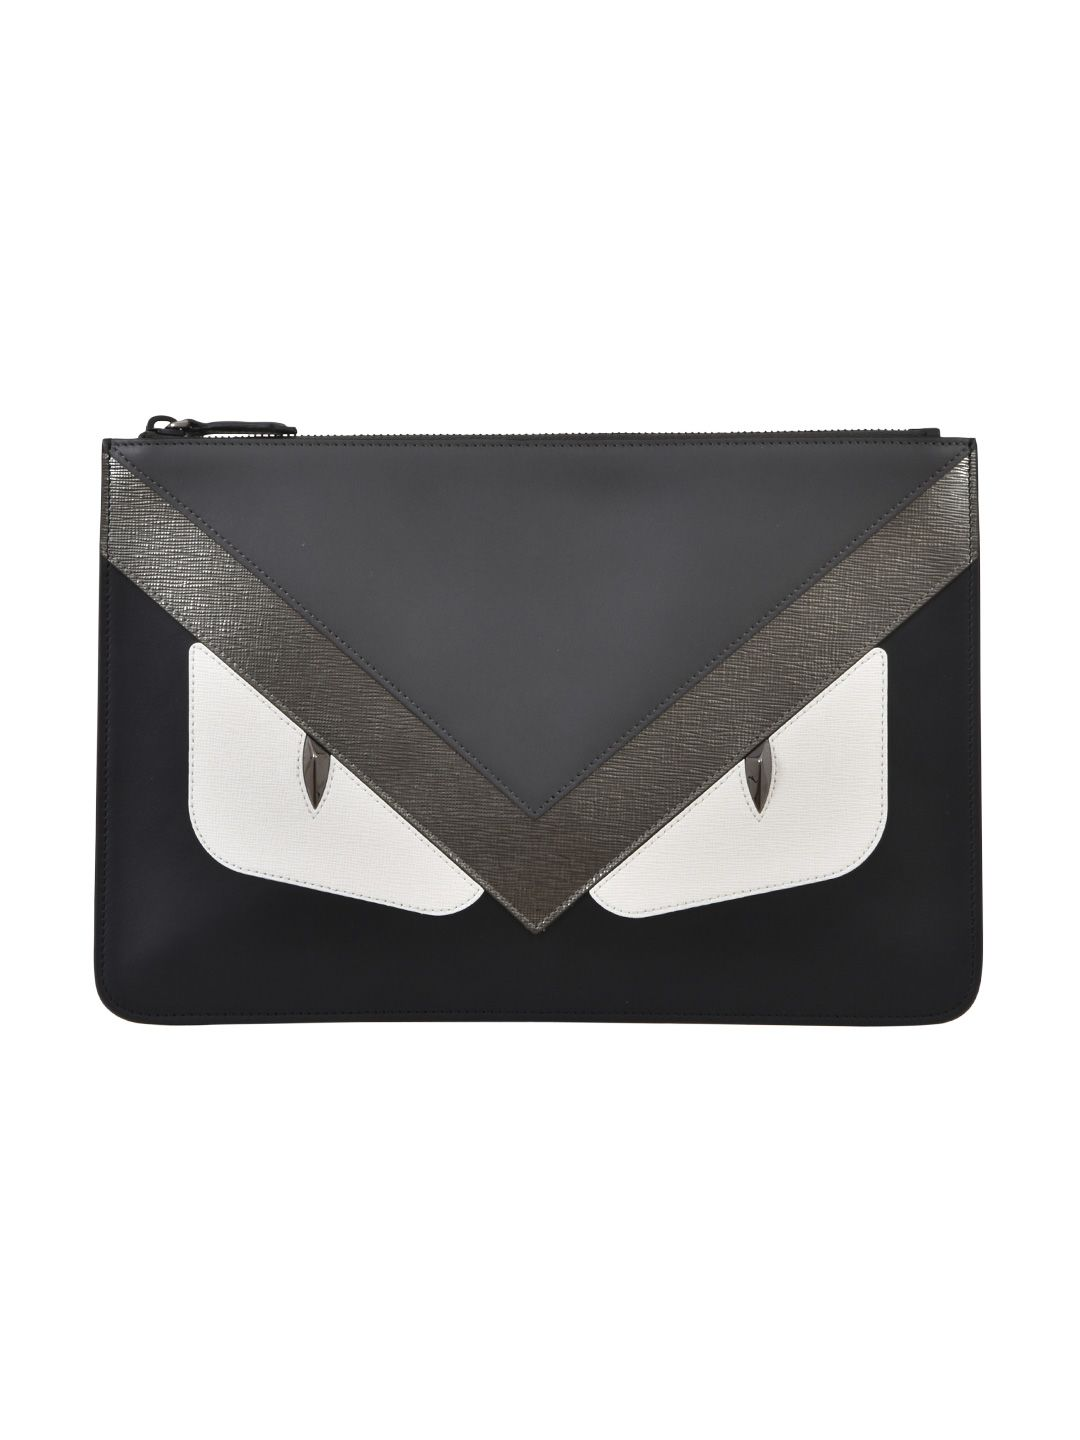 FENDI INLAY DETAIL LEATHER POUCH